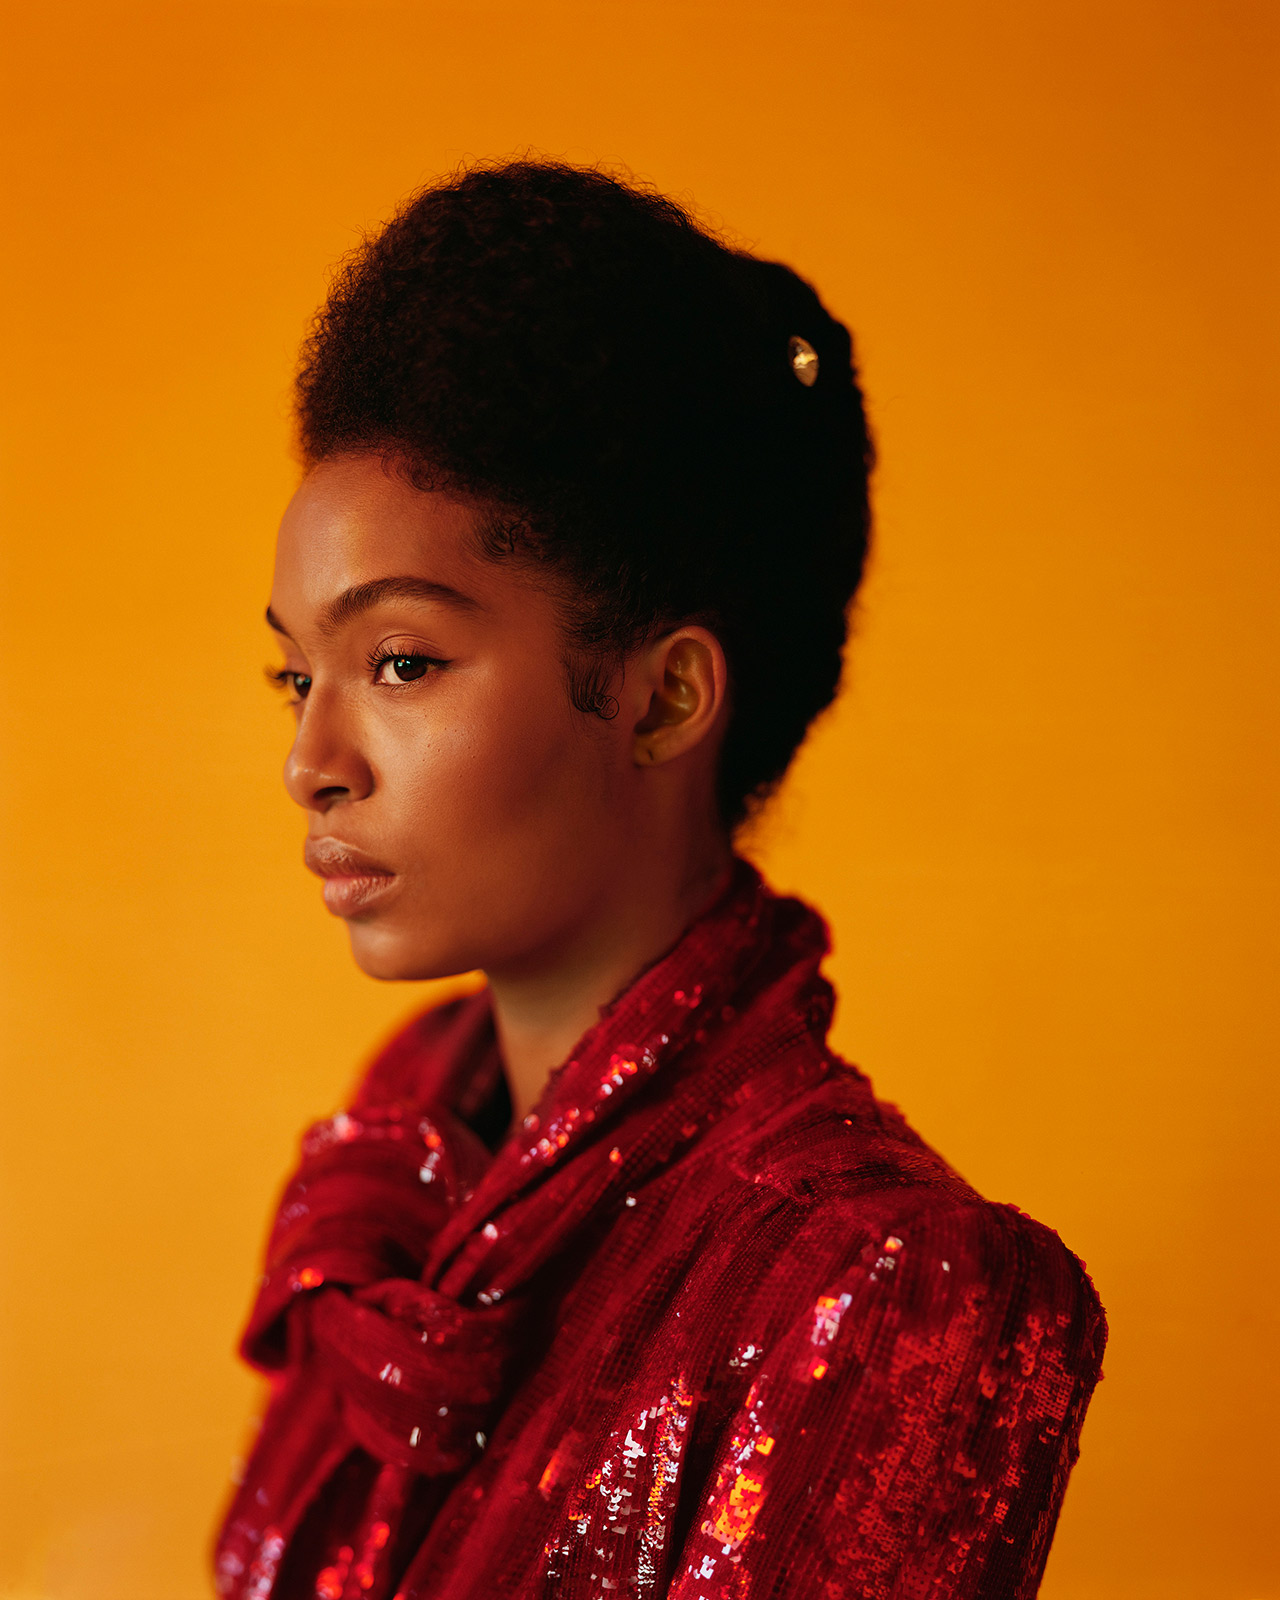 Yara Shahidi and Sarah Lewis carve out new spaces for imagination in the pursuit of an equitable future